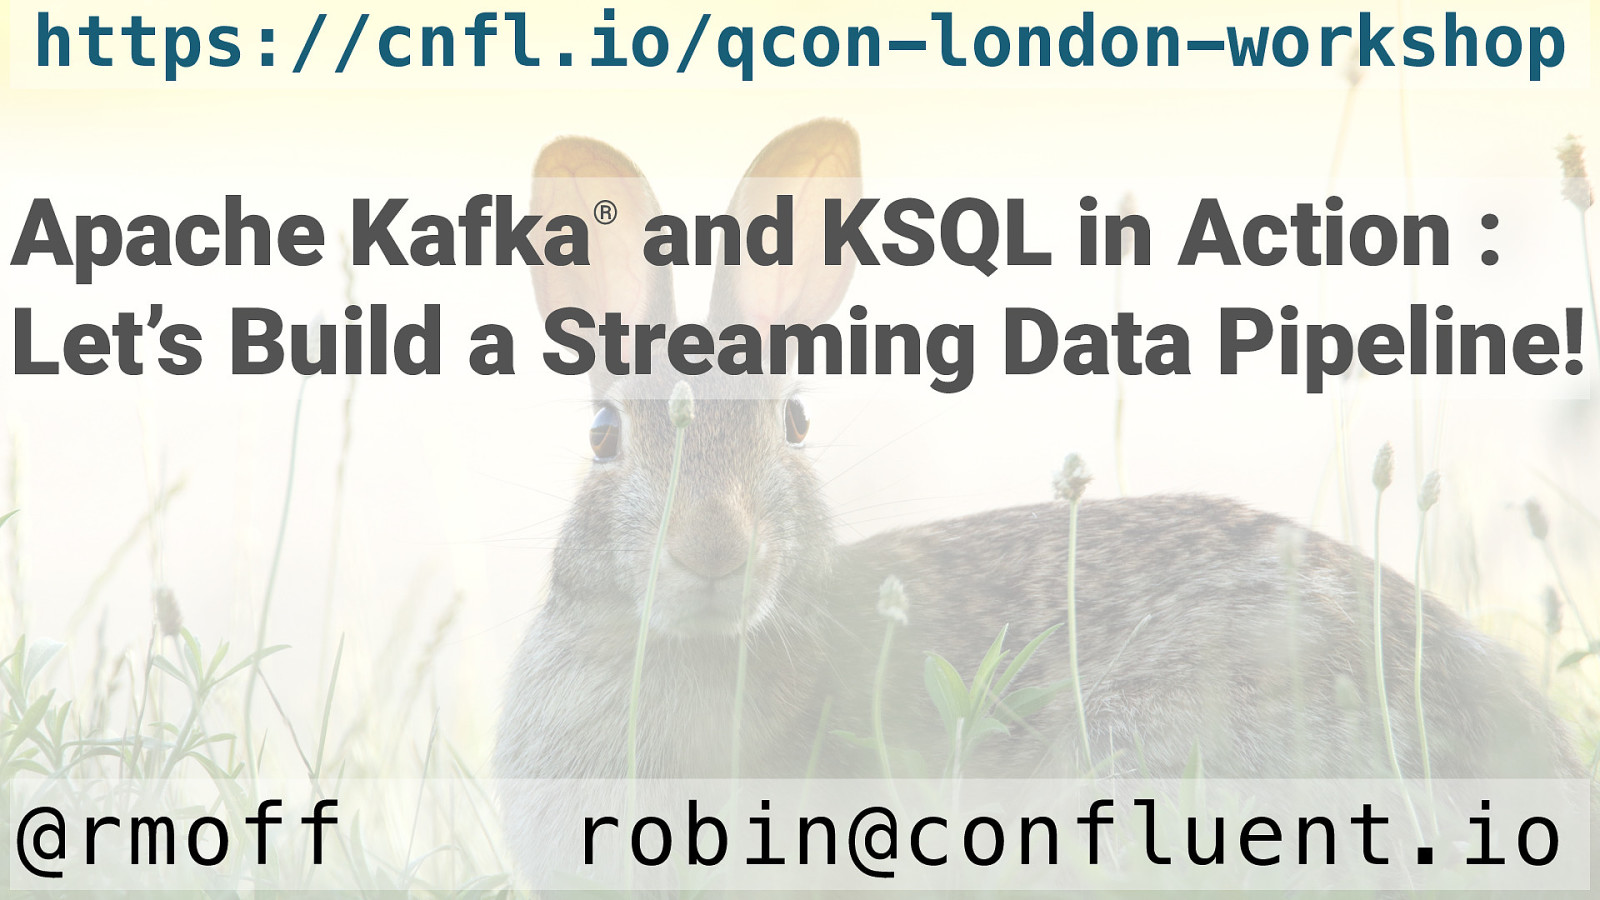 QCon Workshop: Apache Kafka and KSQL in Action : Let's Build a Streaming Data Pipeline!